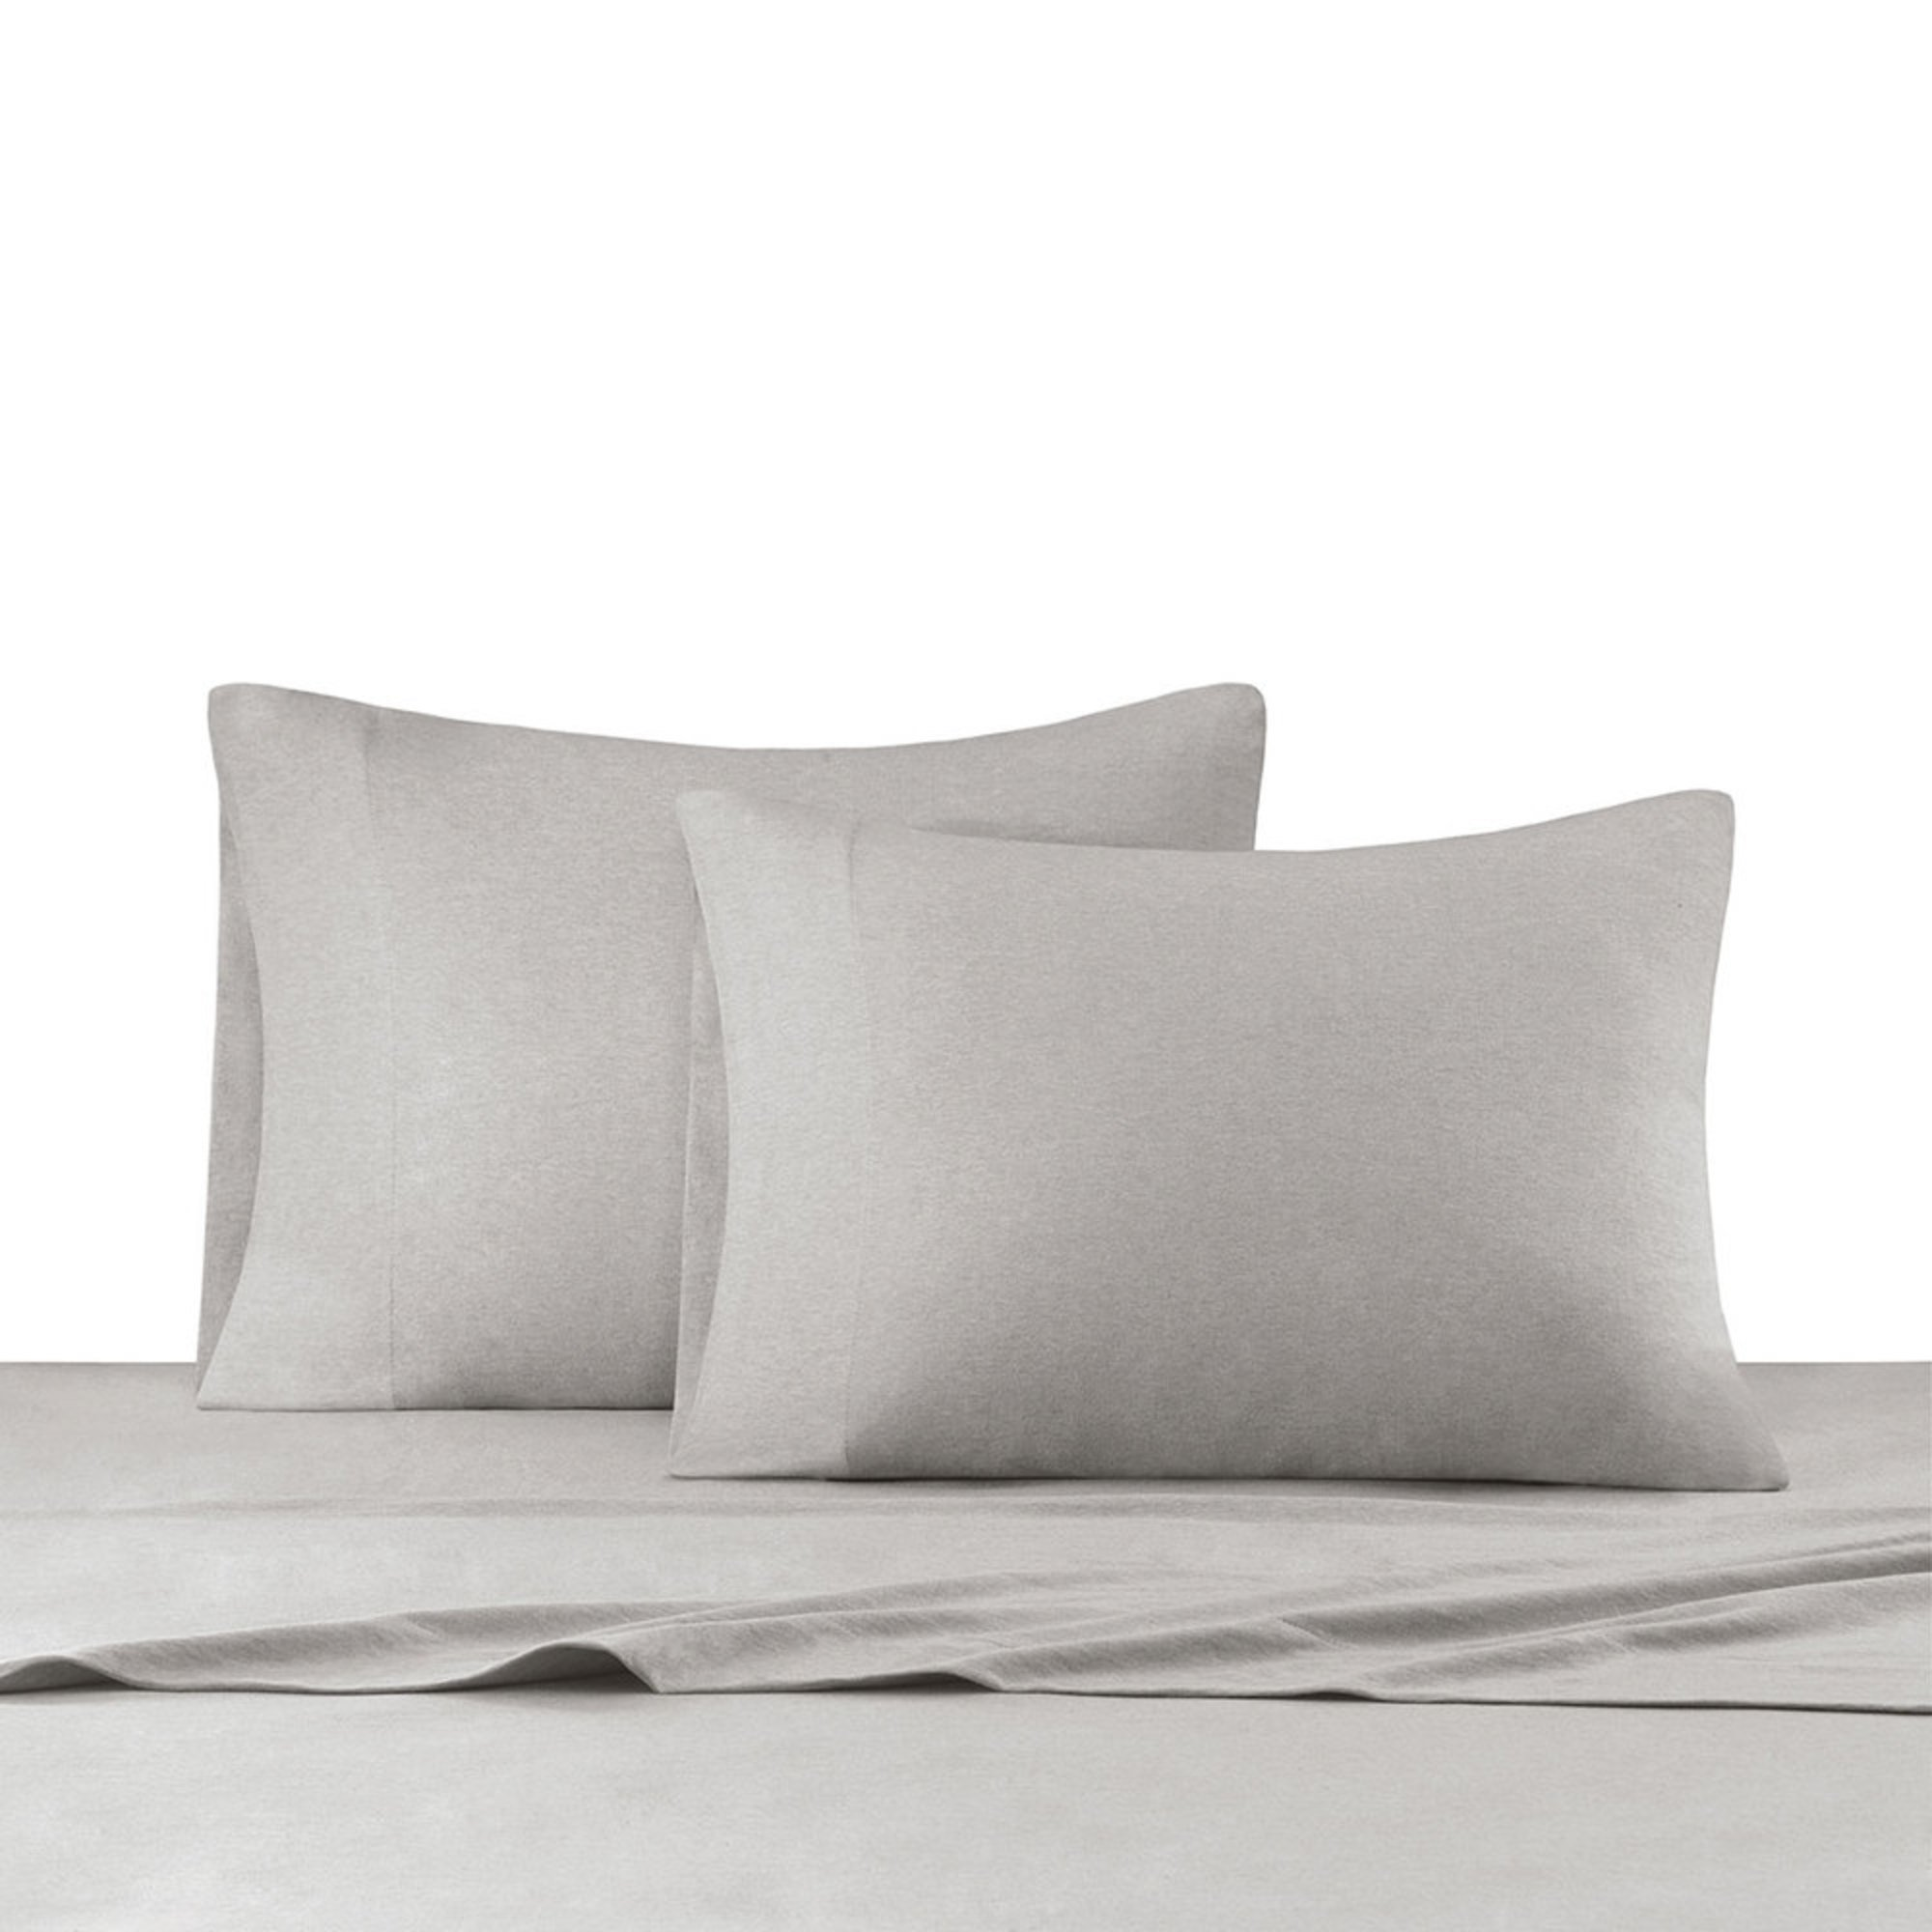 Ink Ivy Heathered Jersey Knit Sheet Set Grey Twin Sheets Pillowcases For The Home Your Navy Exchange Official Site